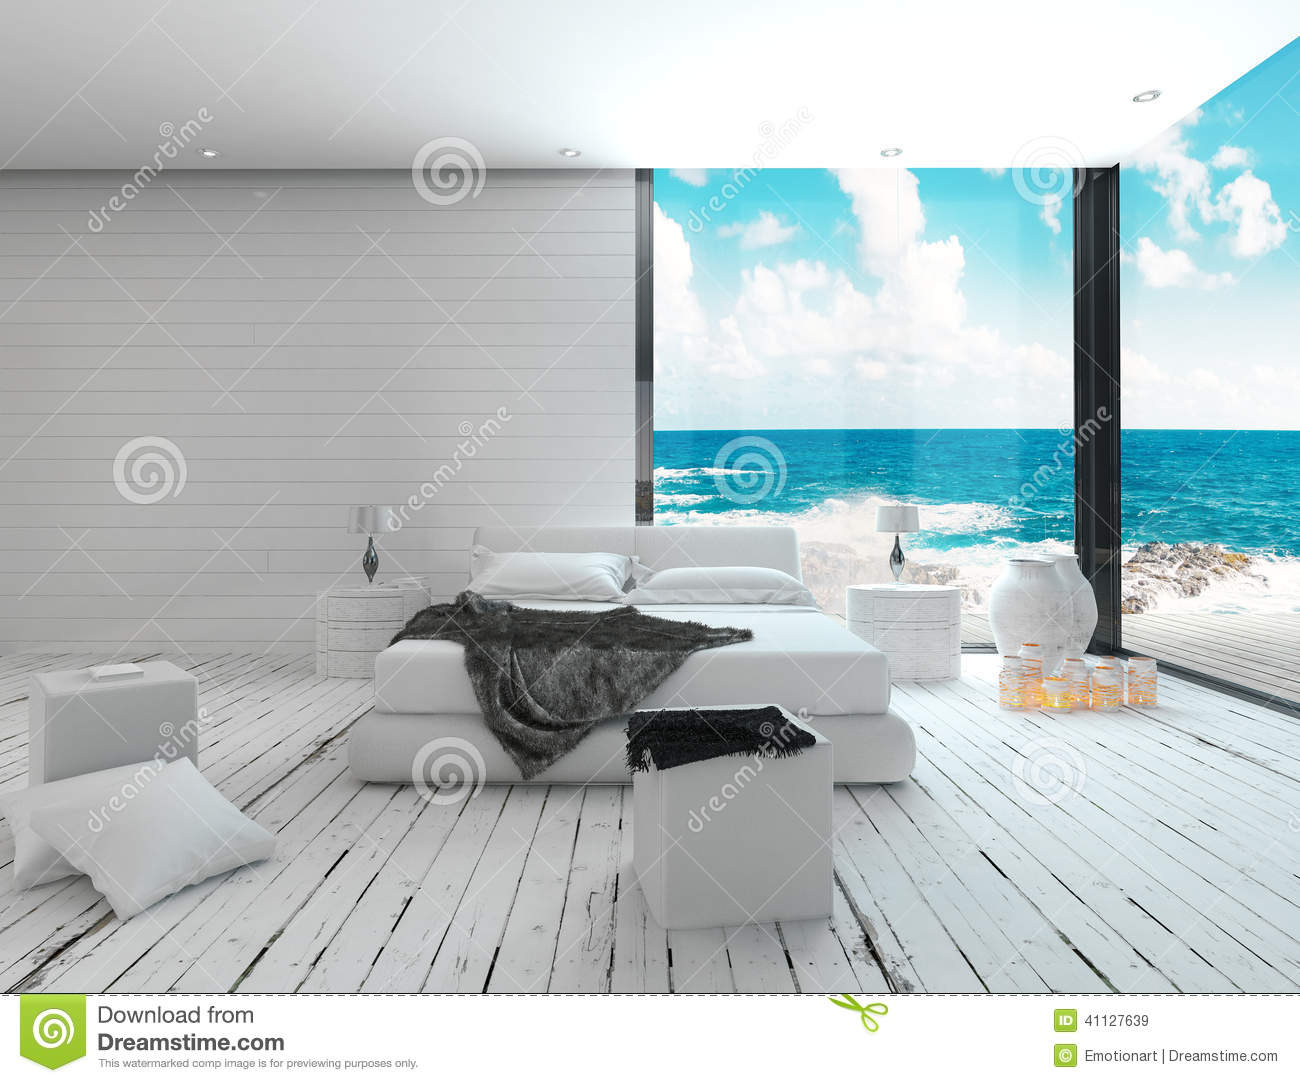 int rieur blanc de chambre coucher dans une vue maritime de style et de mer illustration stock. Black Bedroom Furniture Sets. Home Design Ideas